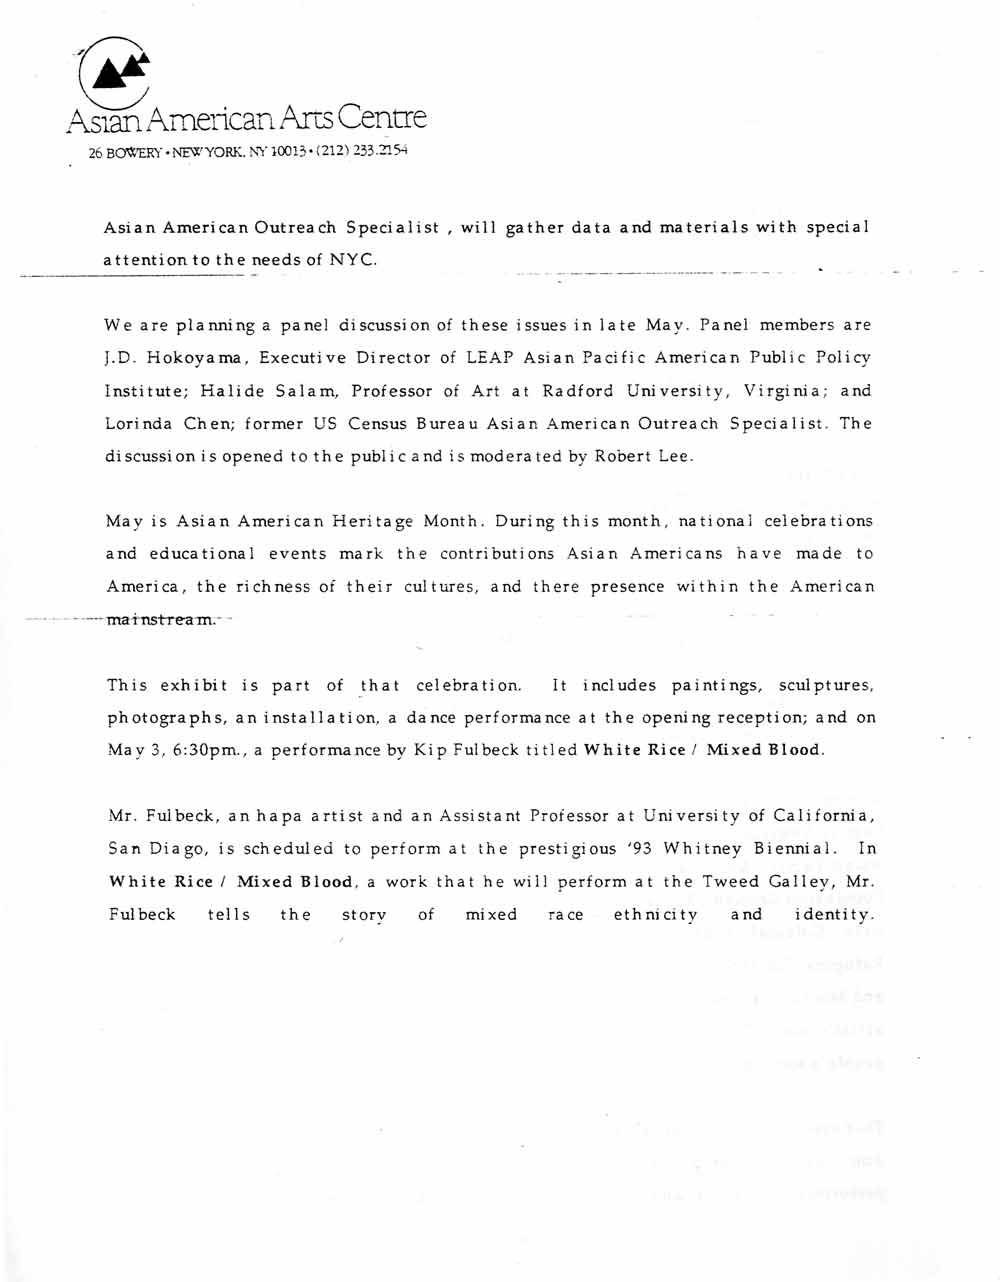 We Count press release, pg 2